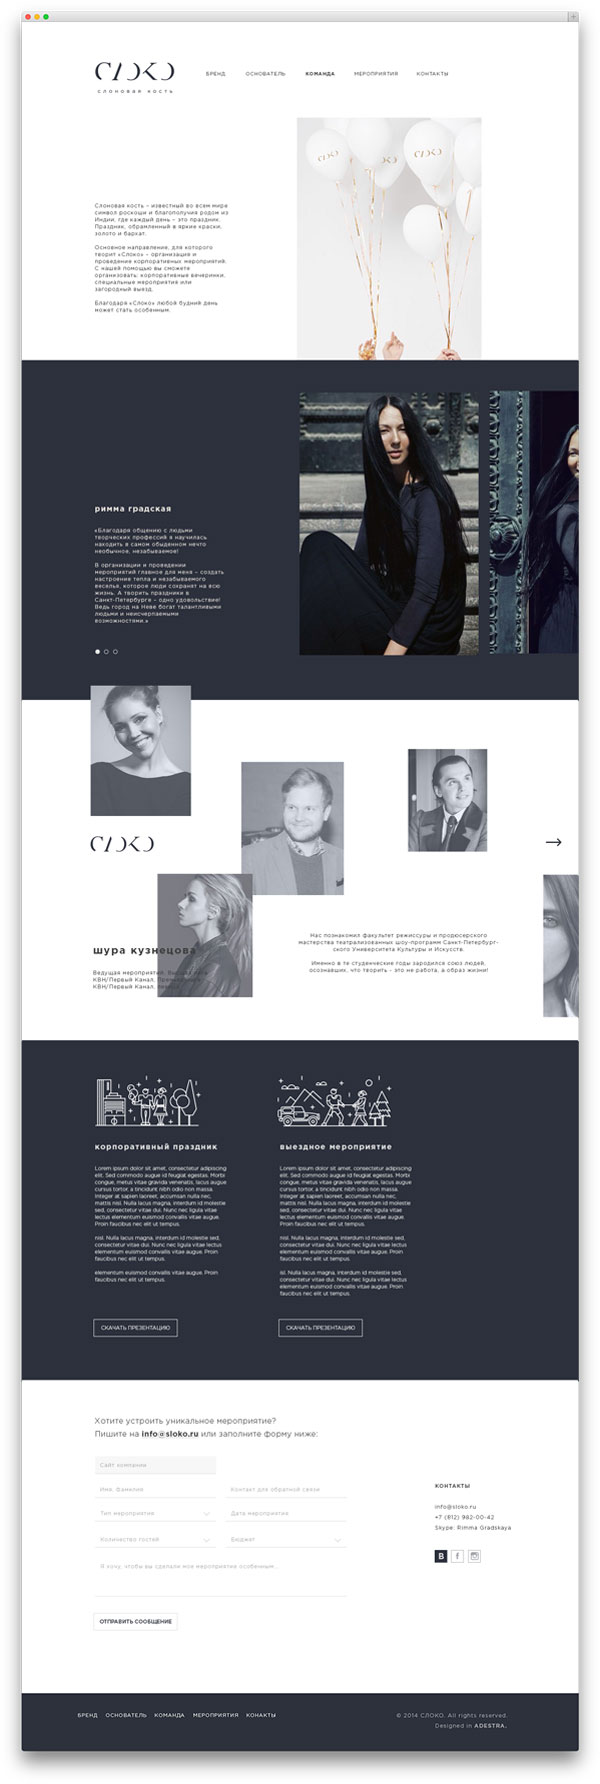 Web design by All Design Transparent (ADESTRA) for SLOKO, an event project based in Saint-Peterburg, Russia.